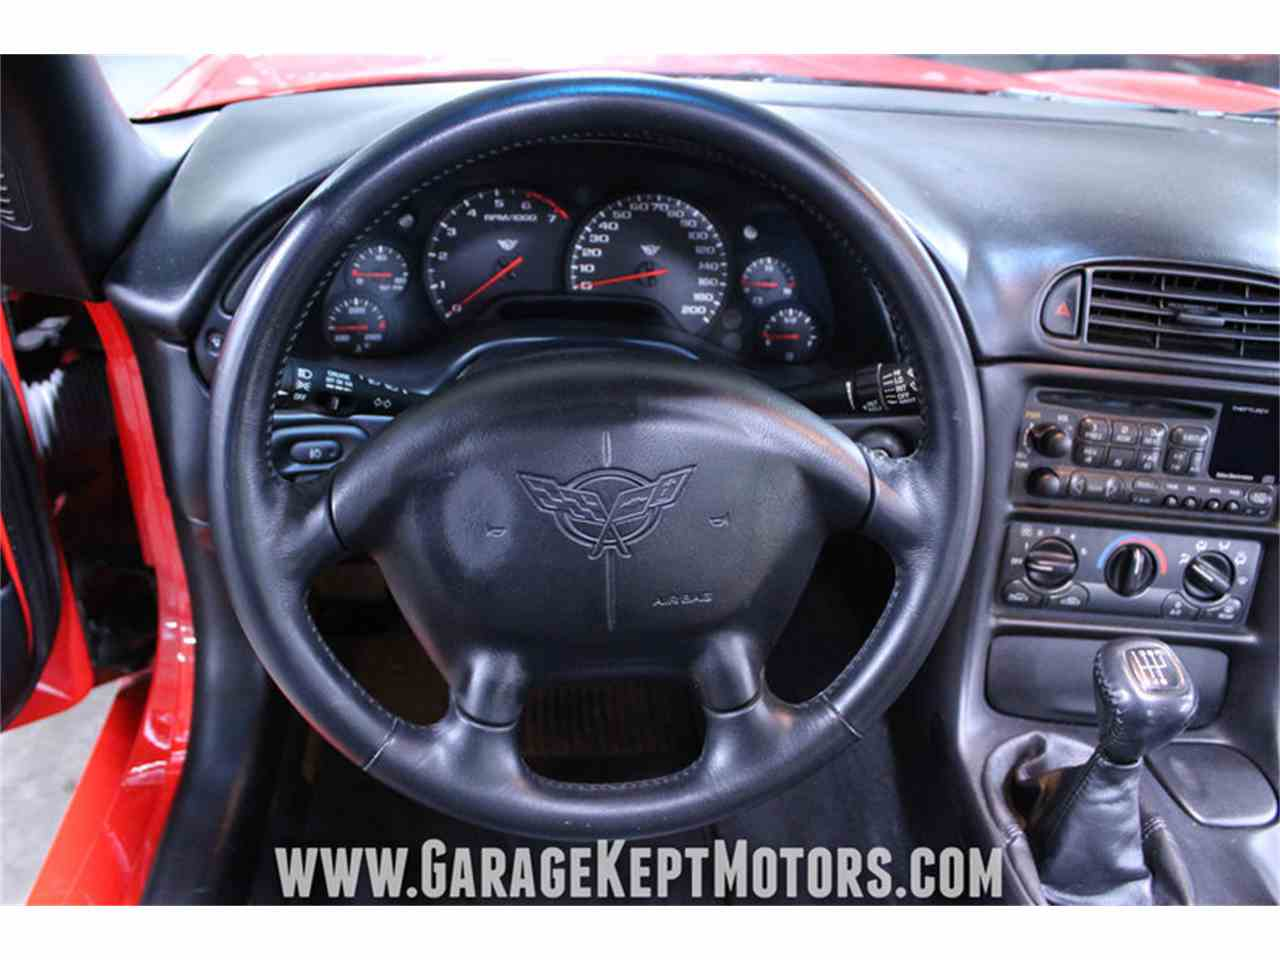 Large Picture of 1998 Chevrolet Corvette - $17,900.00 Offered by Garage Kept Motors - MFAU